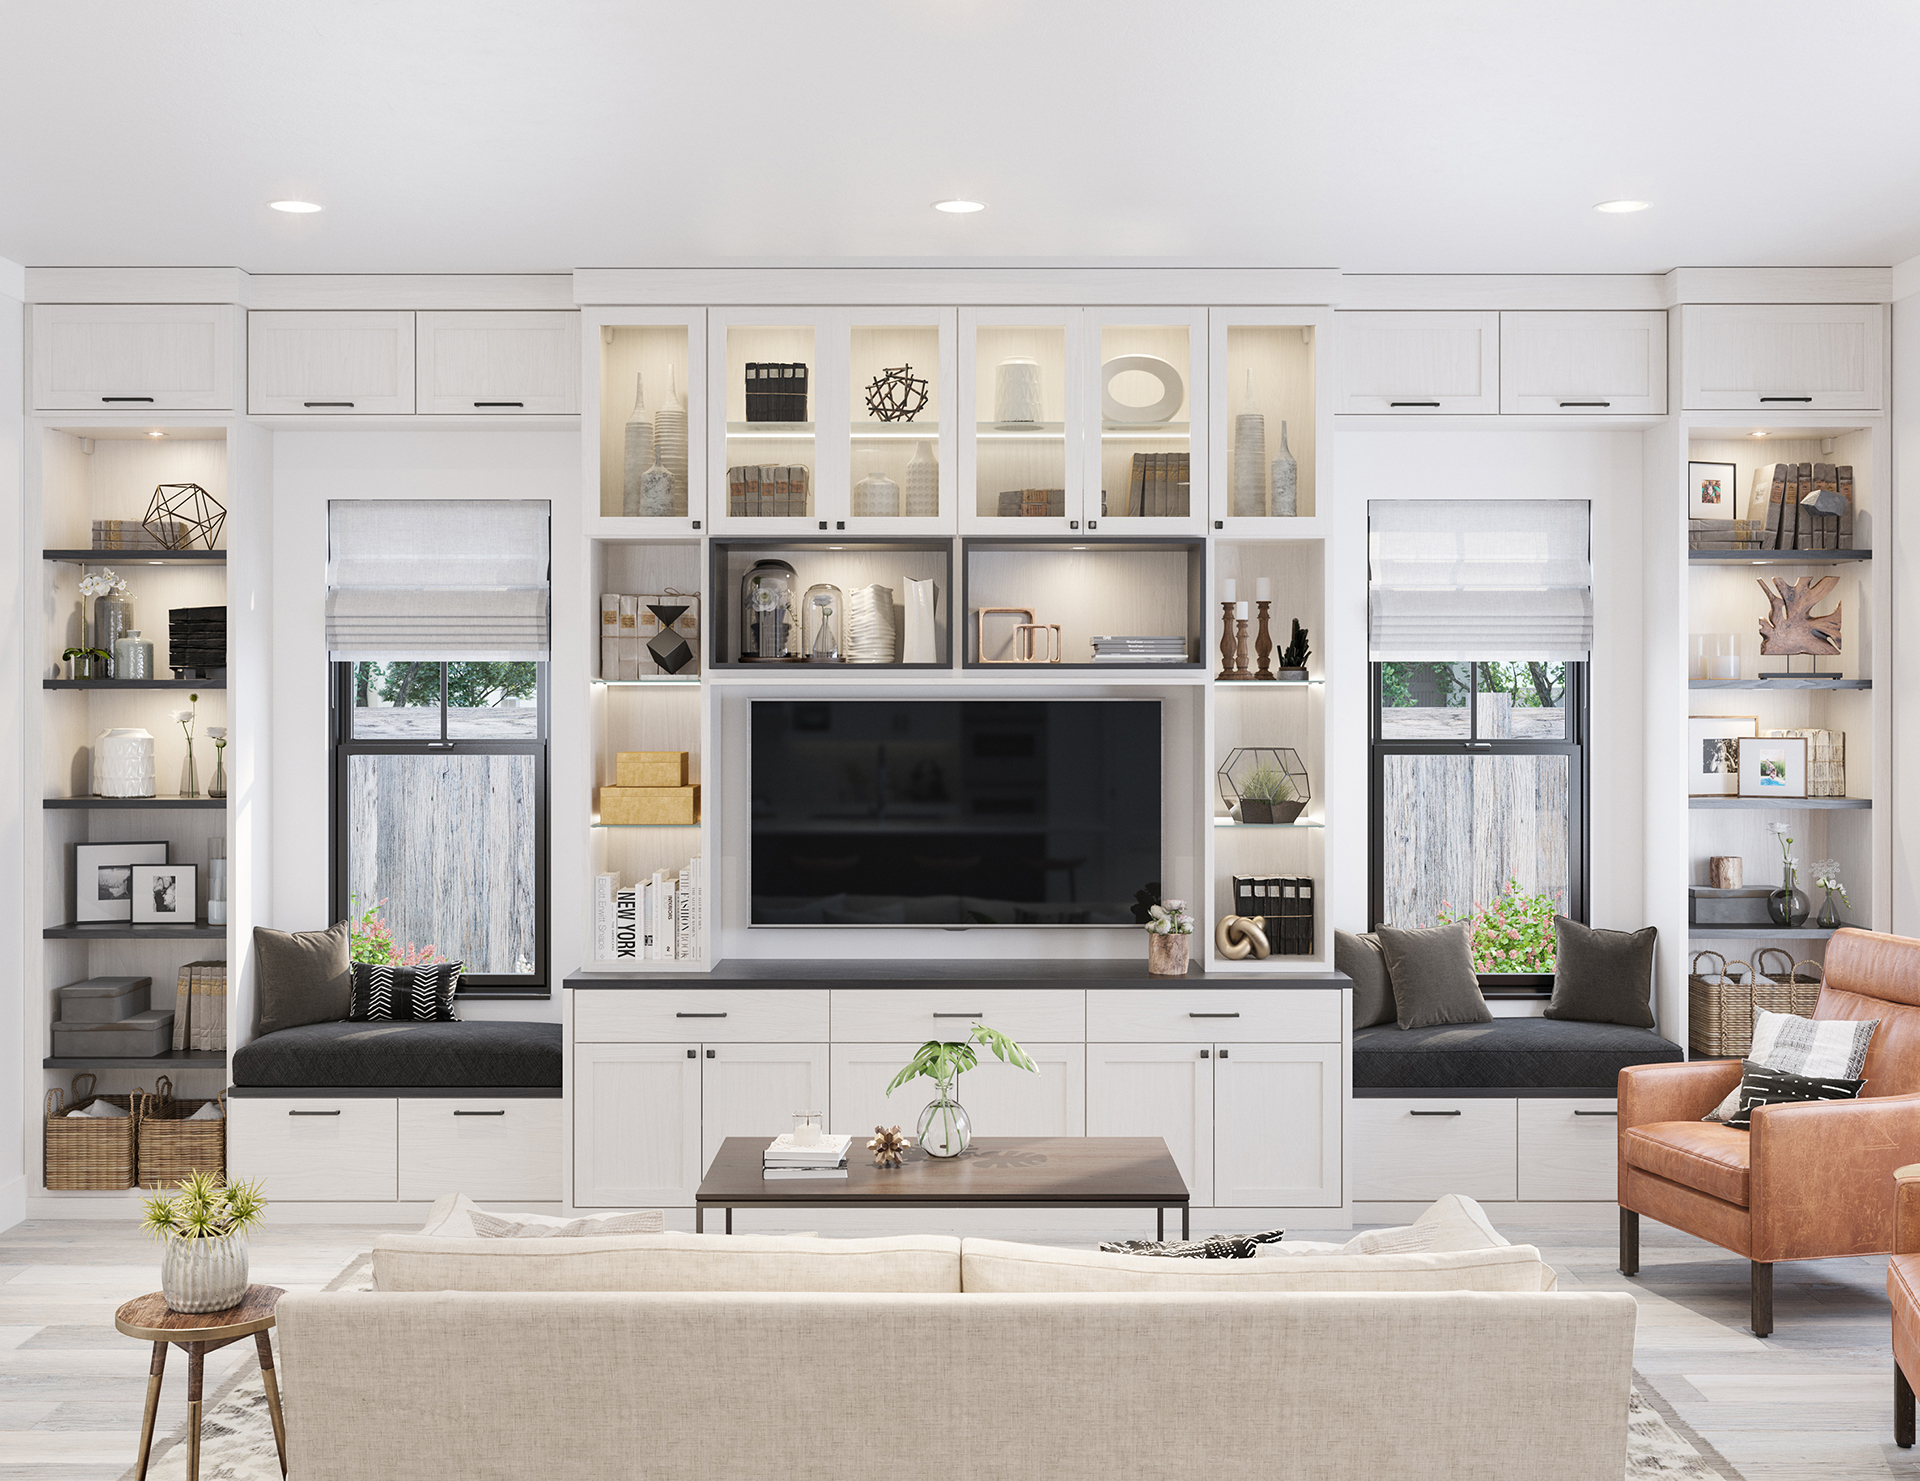 Groovy Family Room Storage Living Room Cabinets California Closets Download Free Architecture Designs Embacsunscenecom